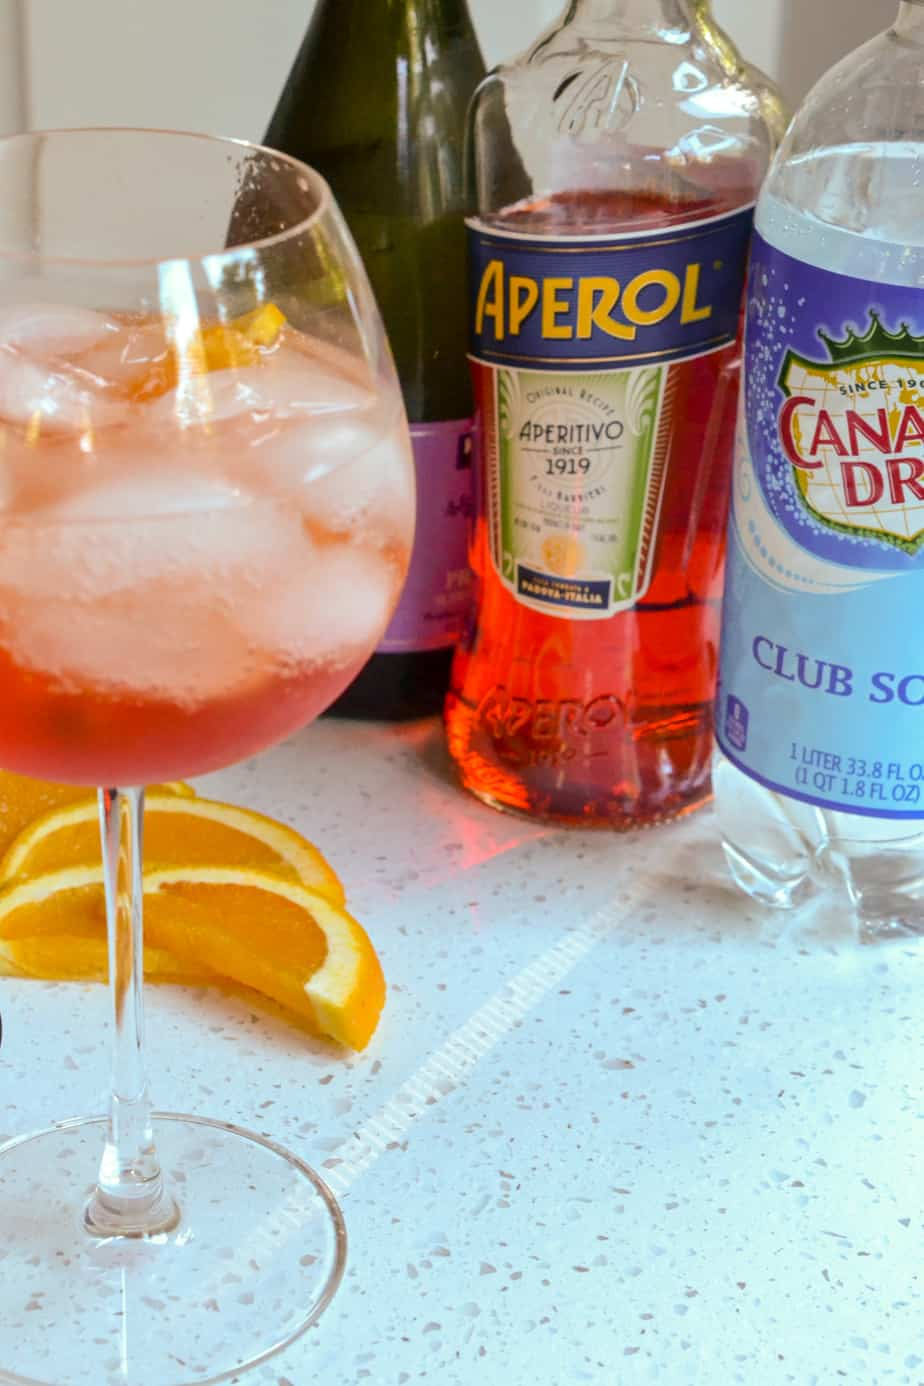 The ingredients for Aperol spritz are prosecco, Aperol, and club soda.